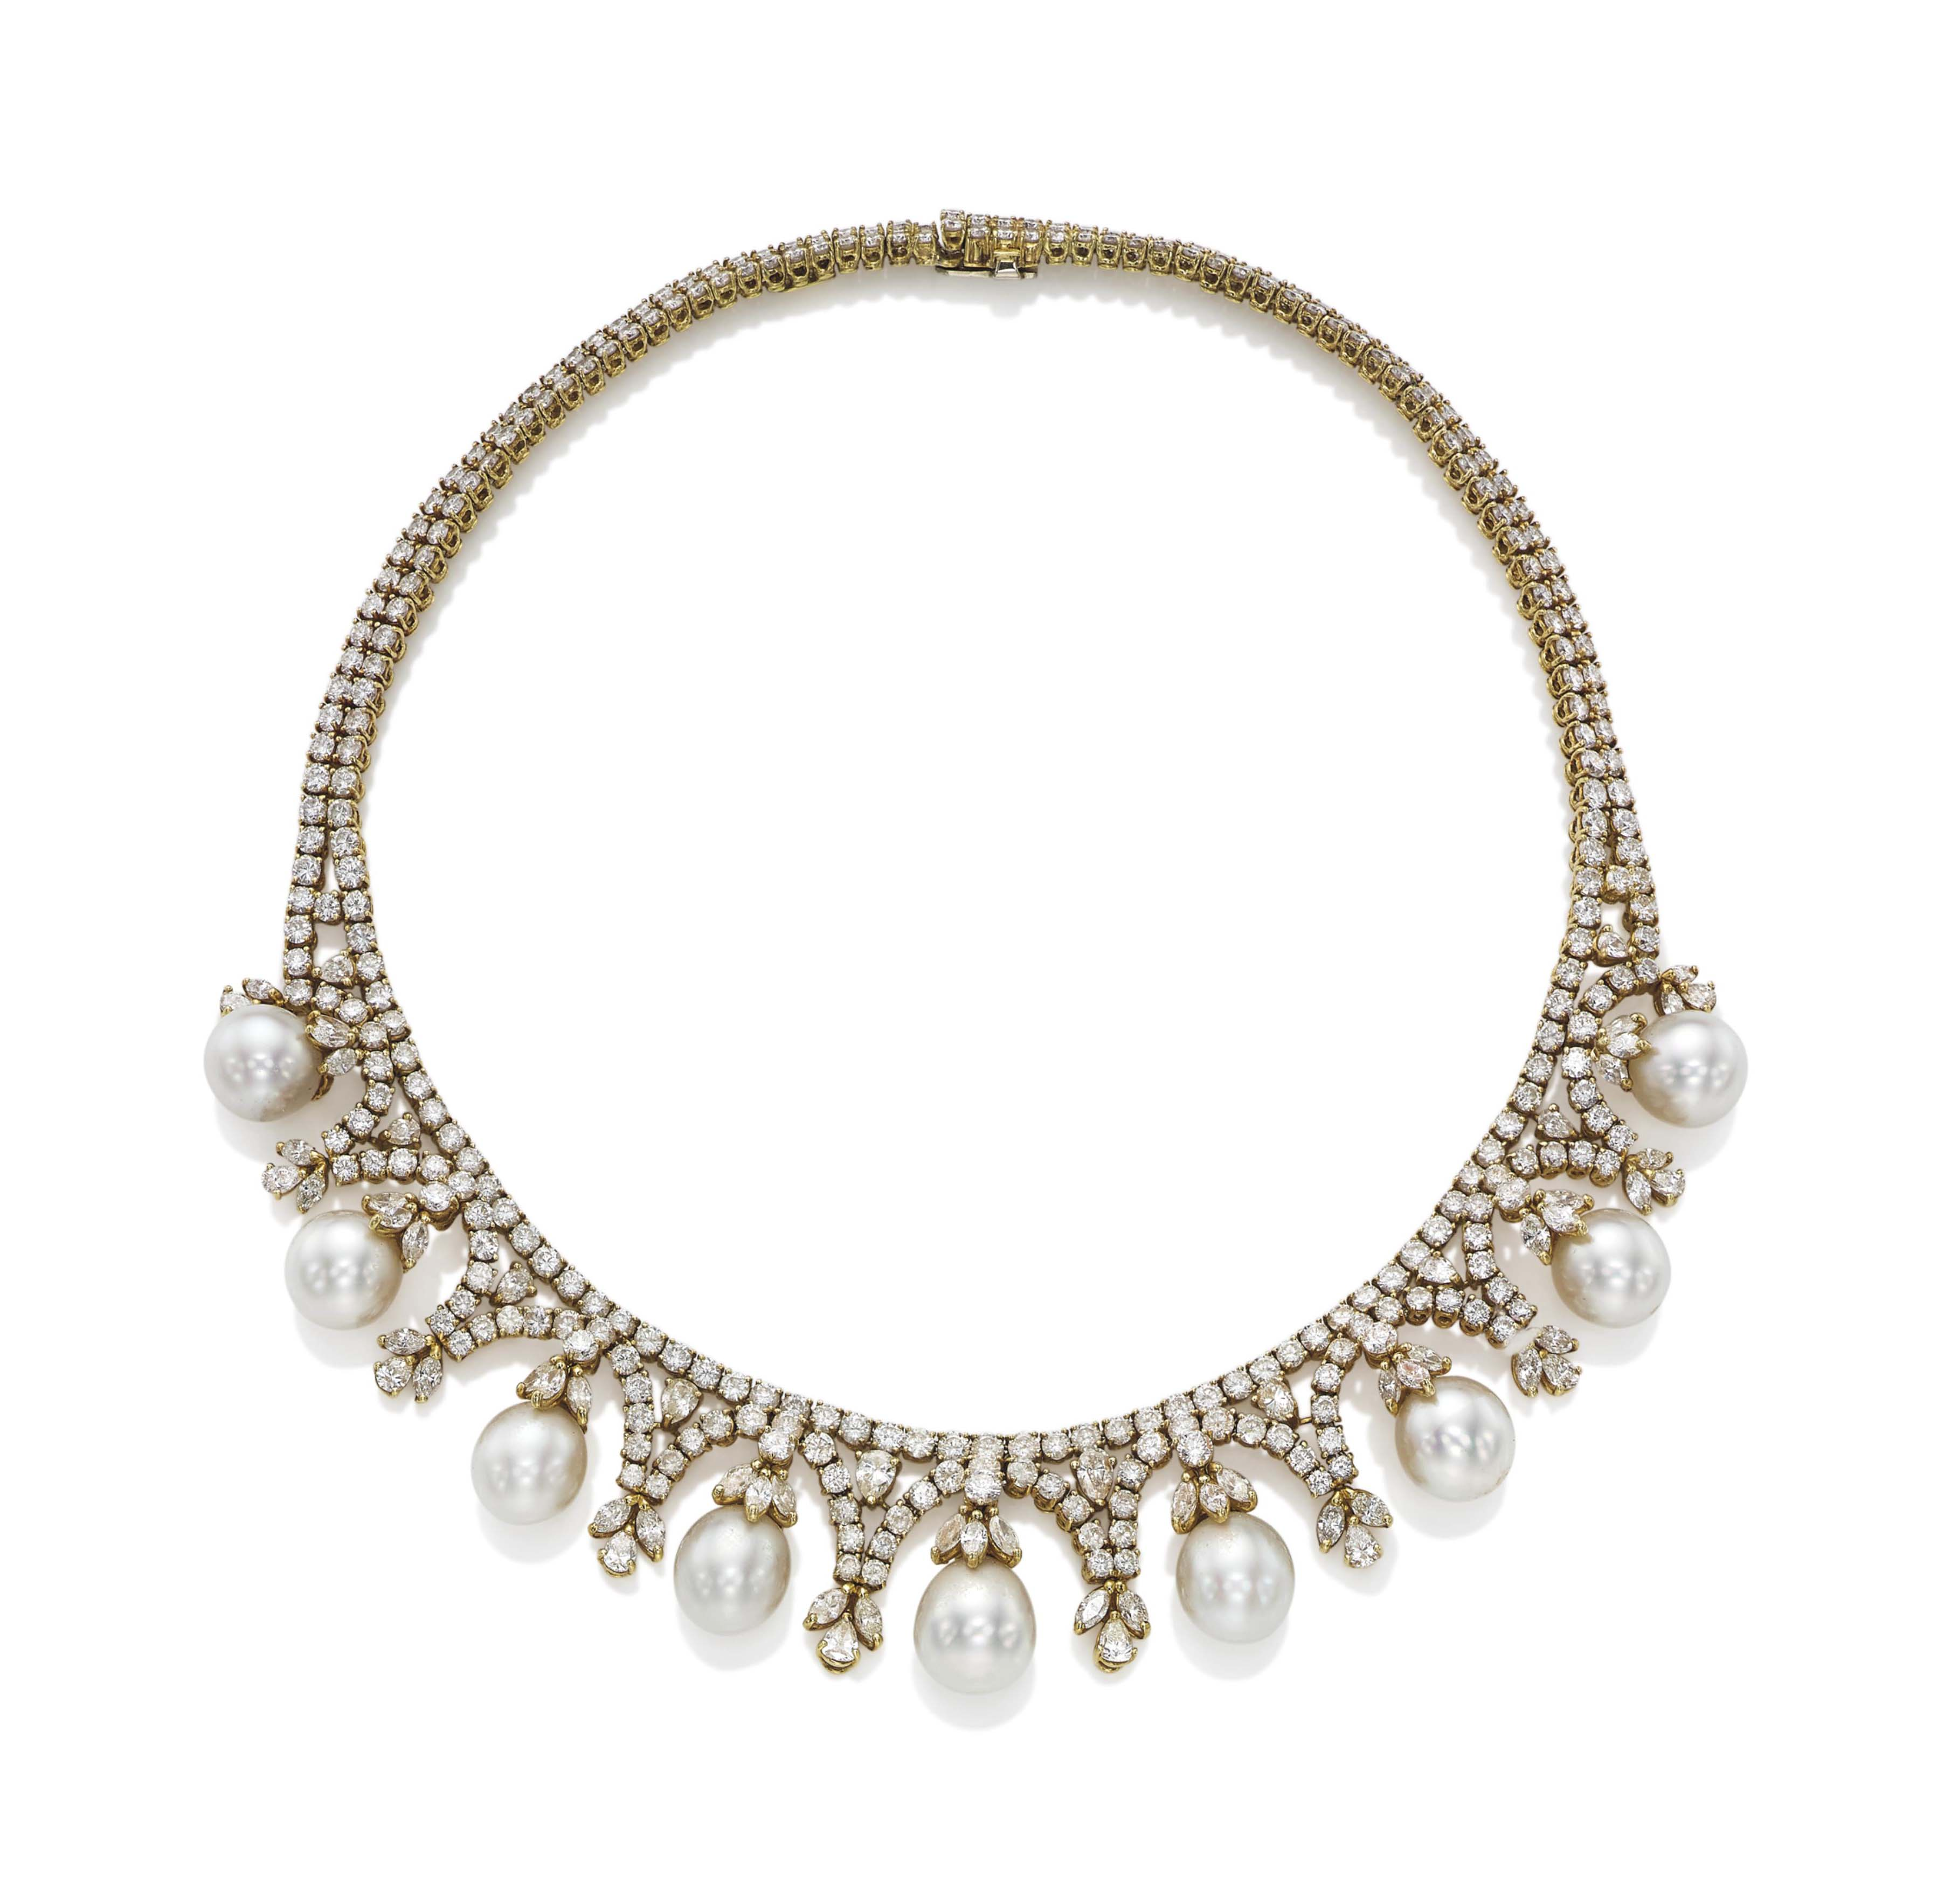 A CULTURED PEARL AND DIAMOND FRINGE NECKLACE, BY CHANTECLER